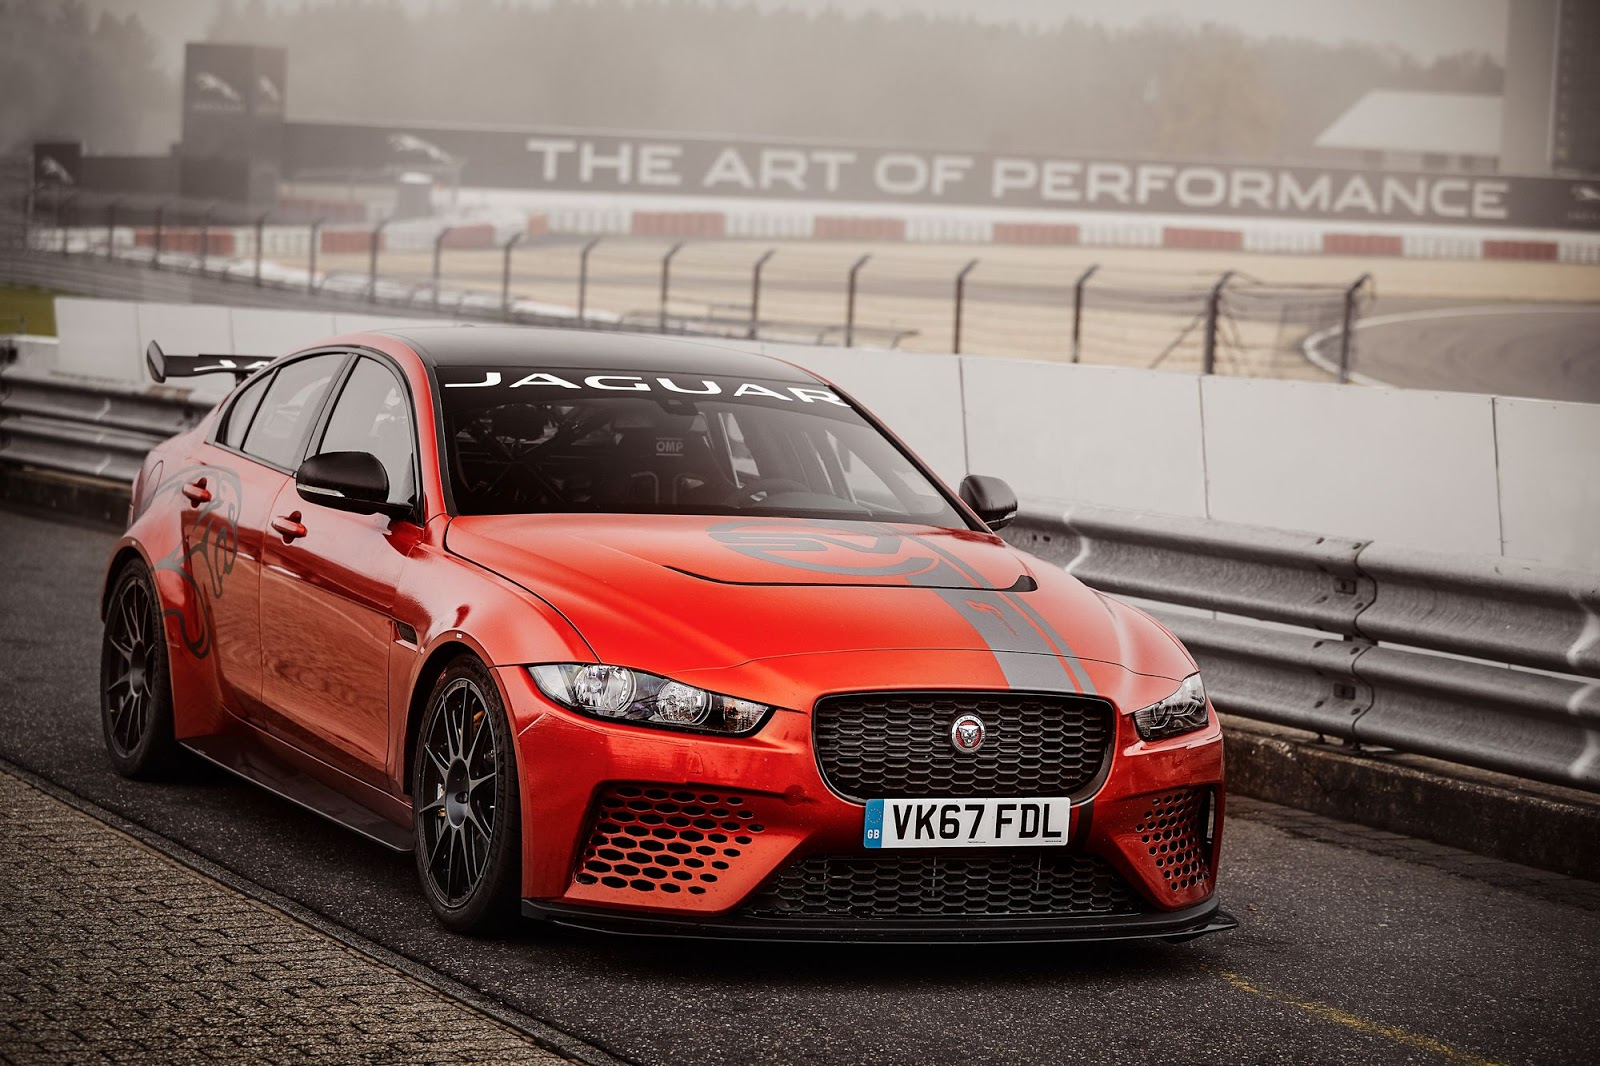 Jaguar Xe Sv Project 8 Is The Fastest Sedan Around The